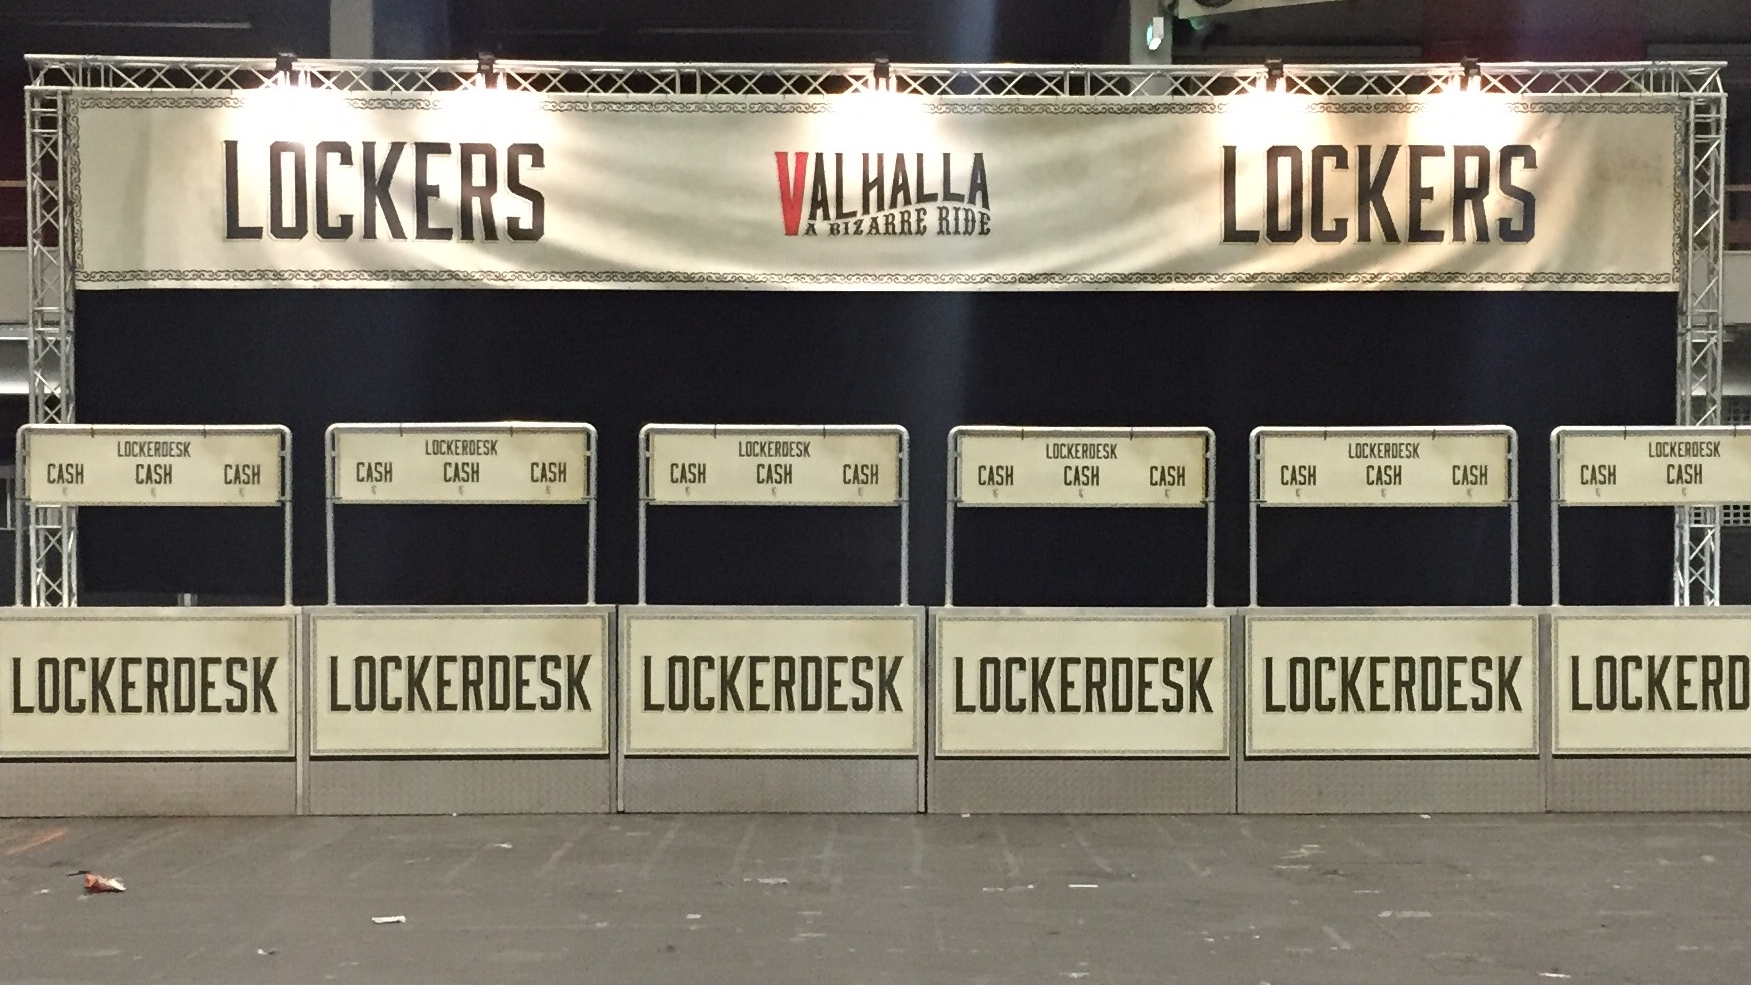 Valhalla Lockerdesk